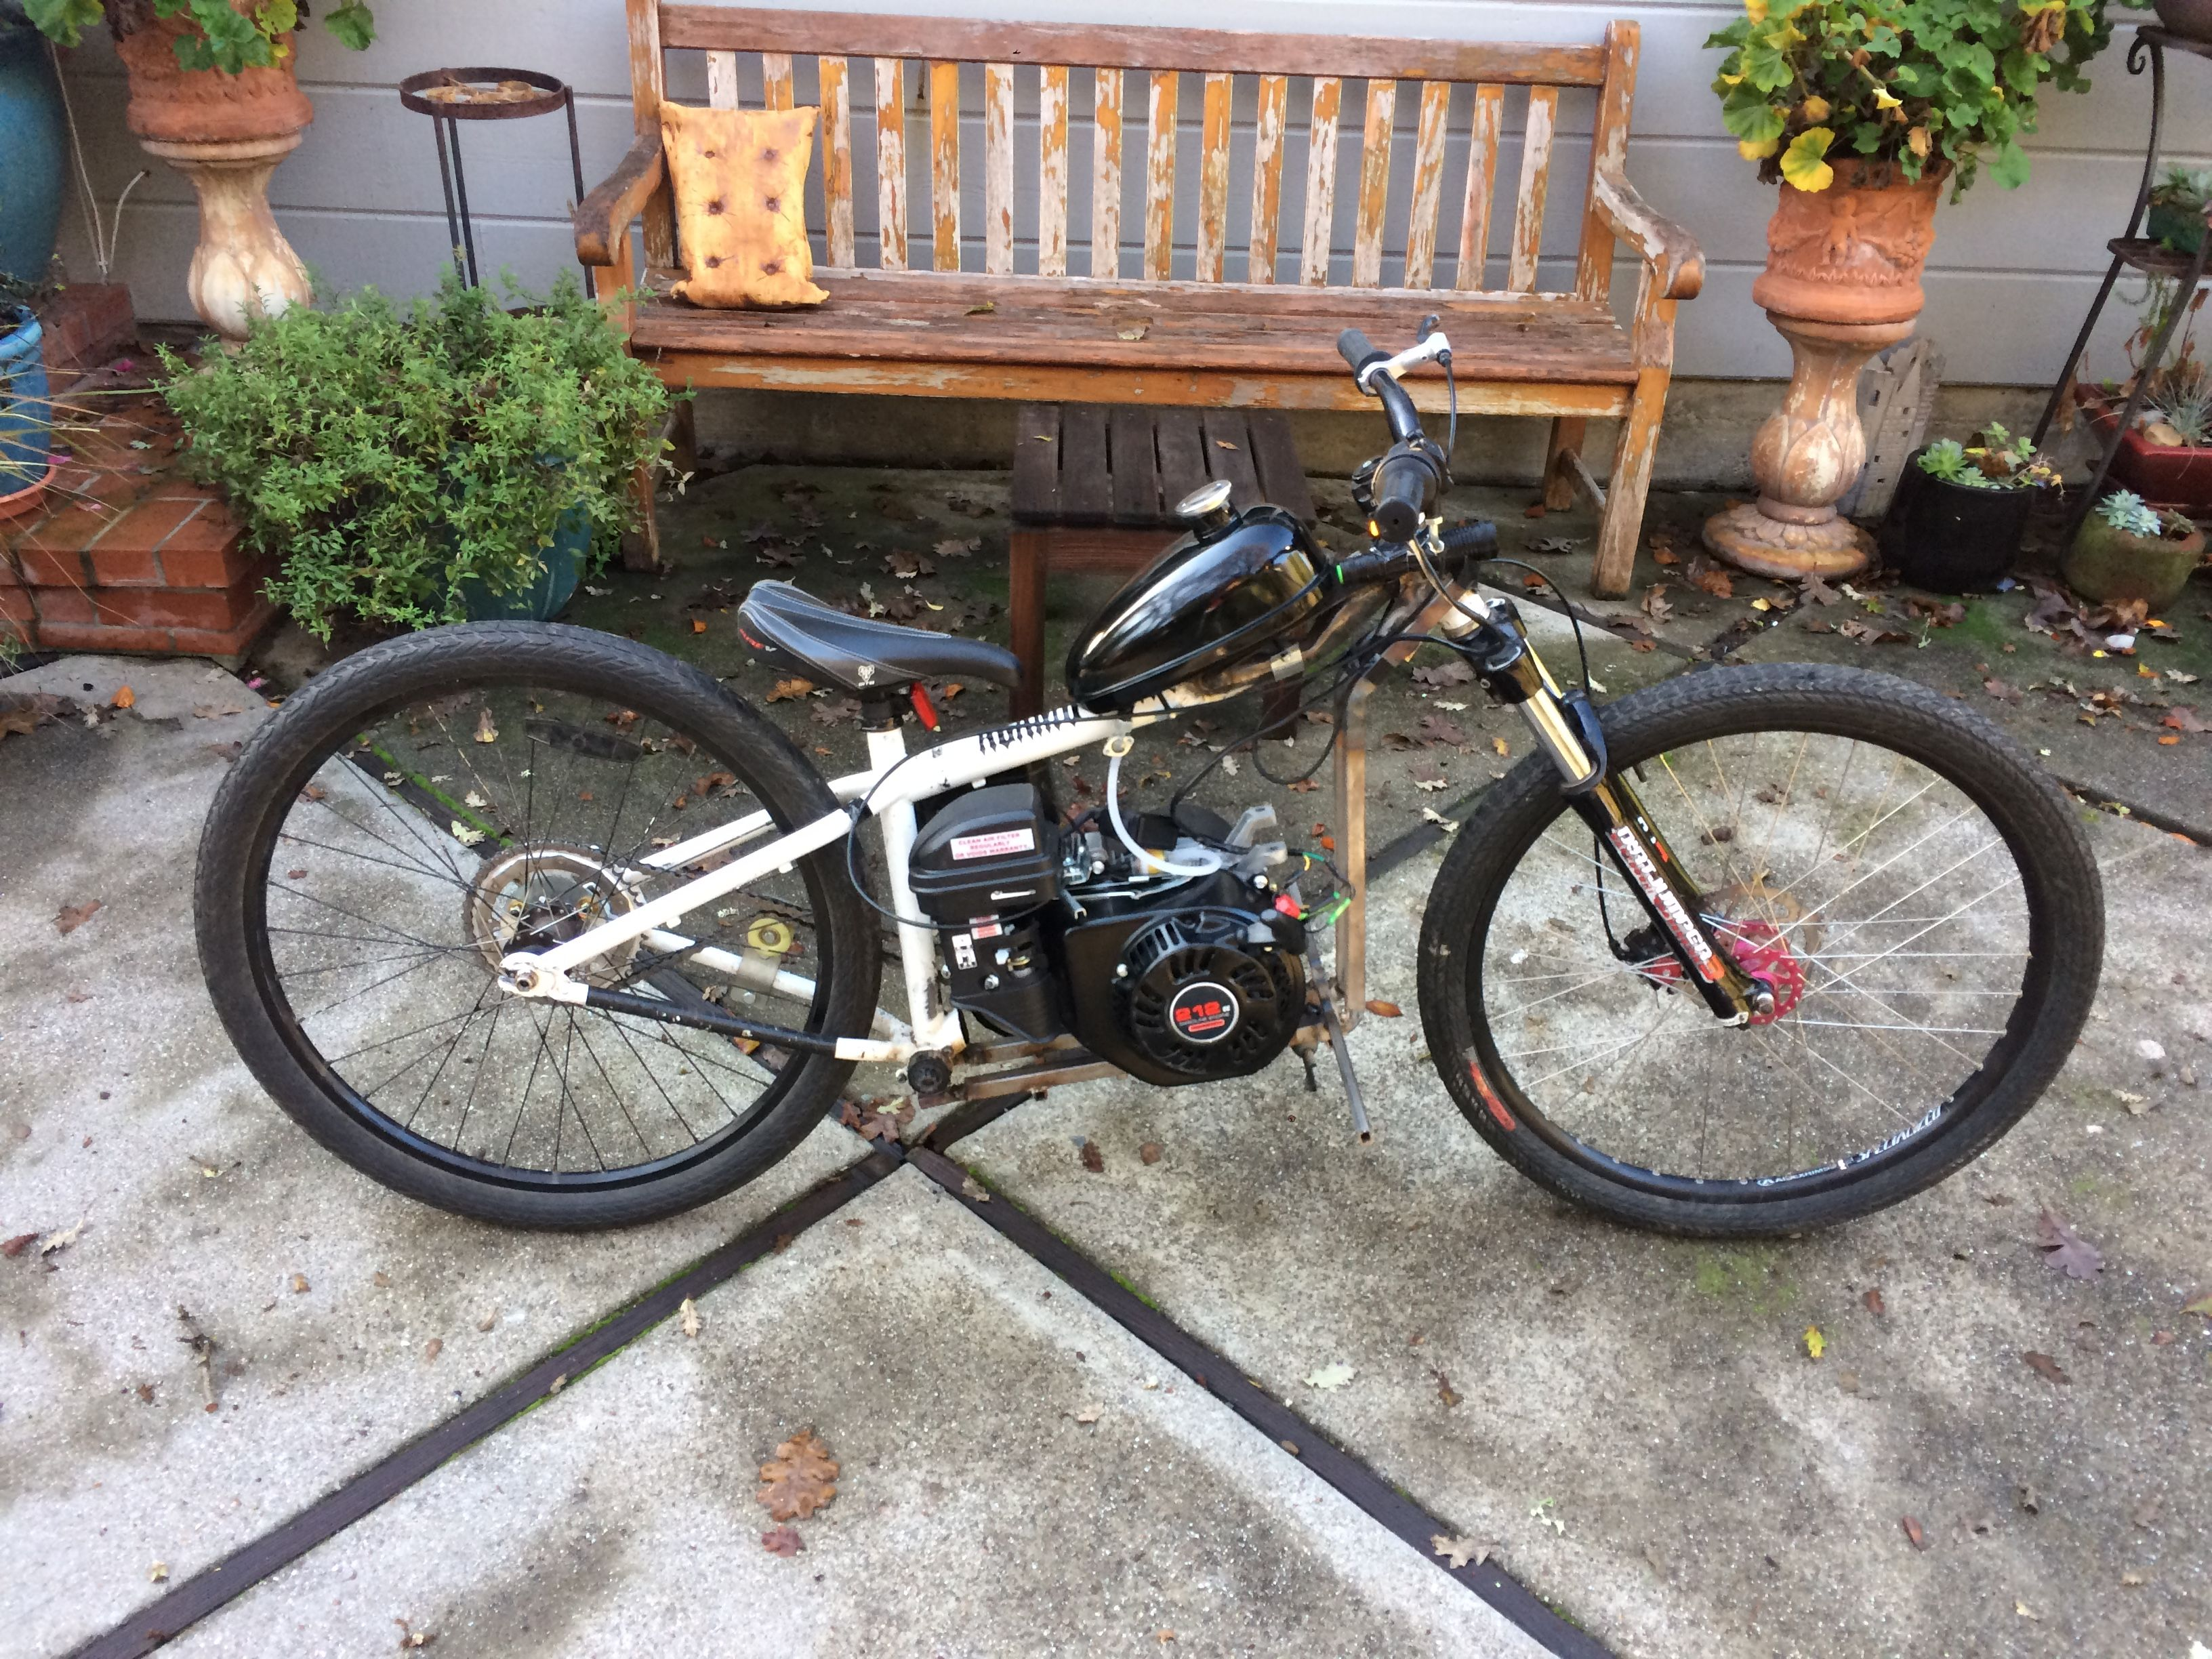 My Homemade Motorcycle Handmade Crafts Howto Diy Homemade Motorcycle Motorcycle Diy Motorcycle